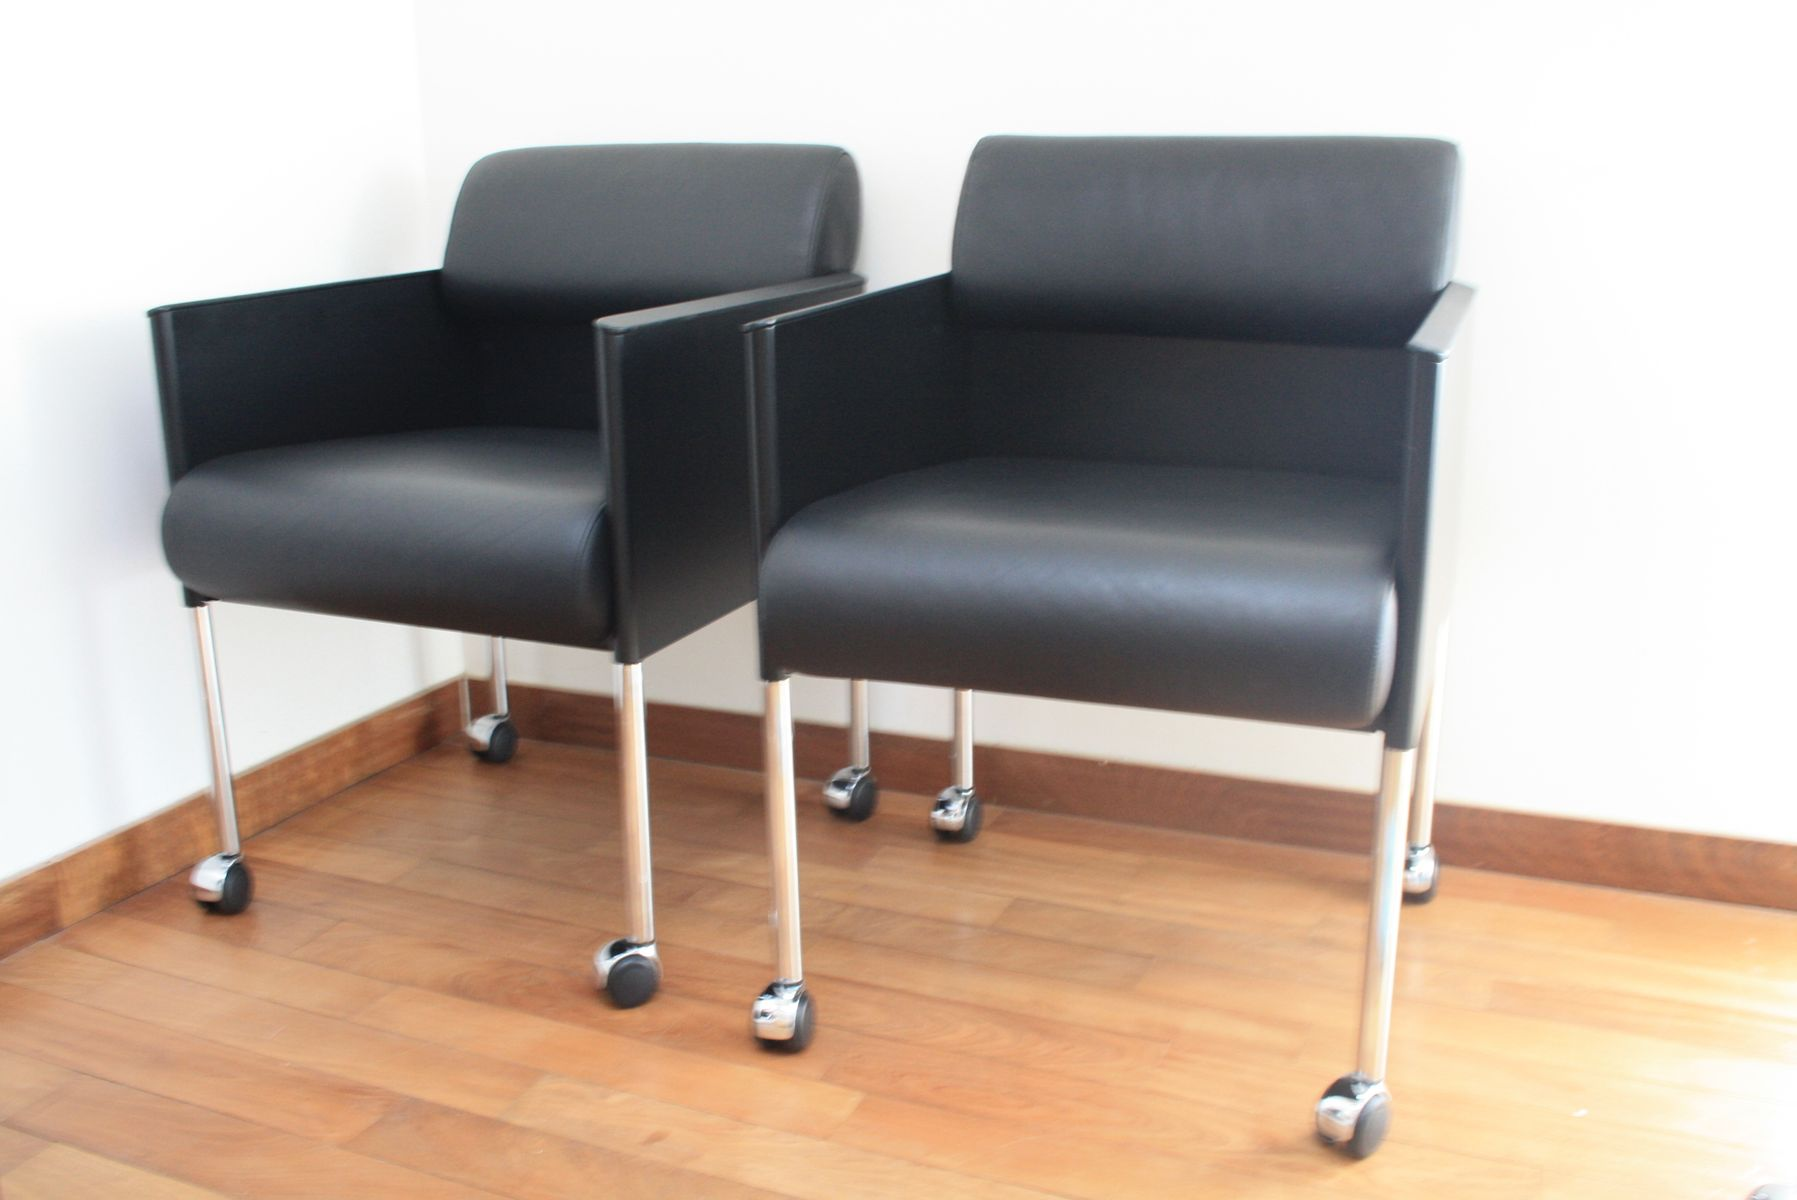 German Leather Armchair from Rosenthal 1975 for sale at Pamono